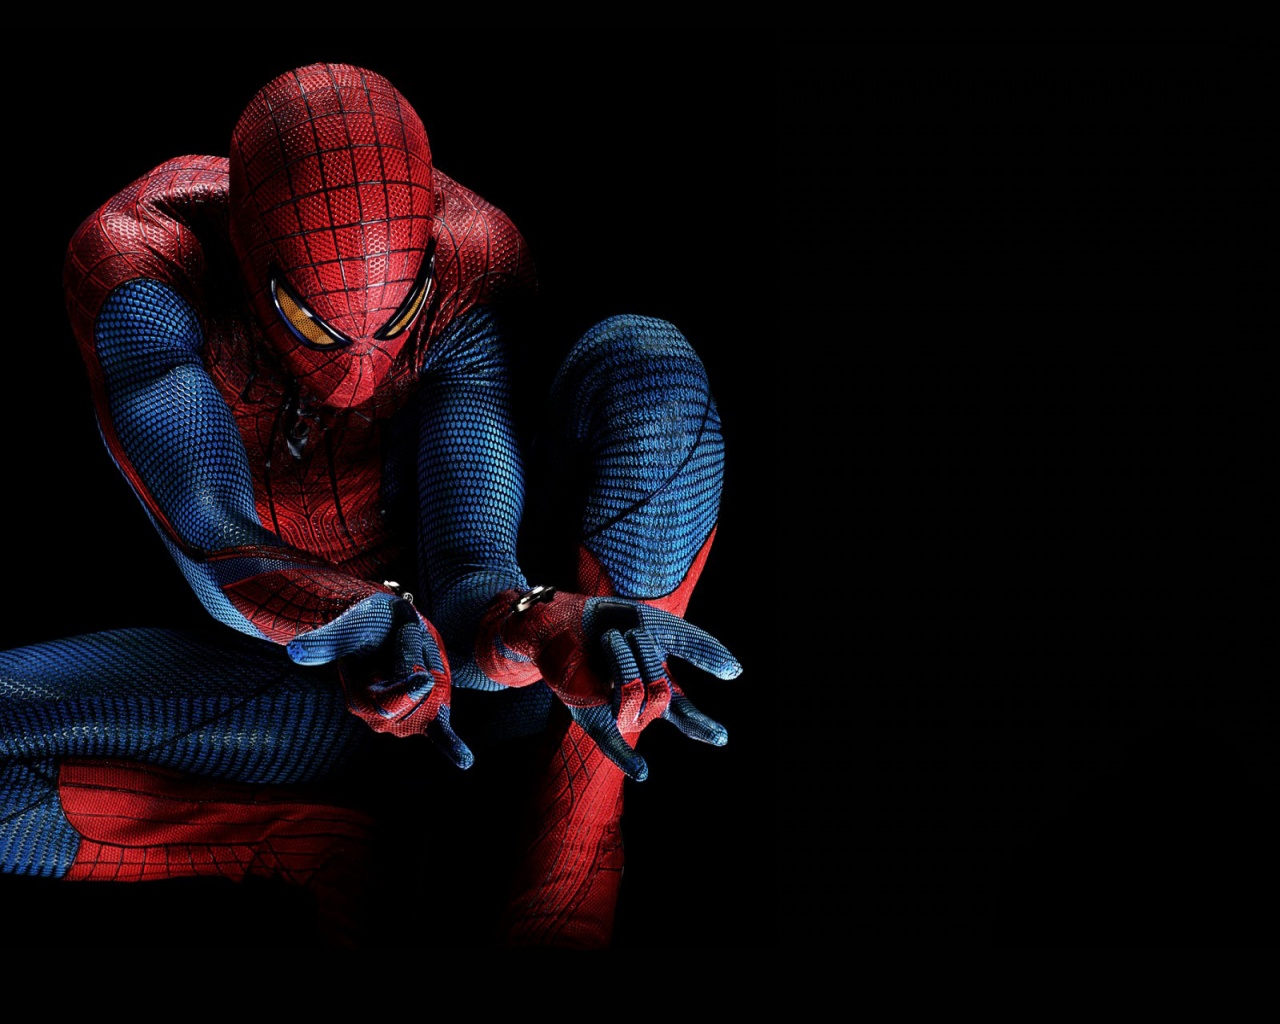 Amazing Spider Man 4 Wallpapers HD Wallpapers 1280x1024